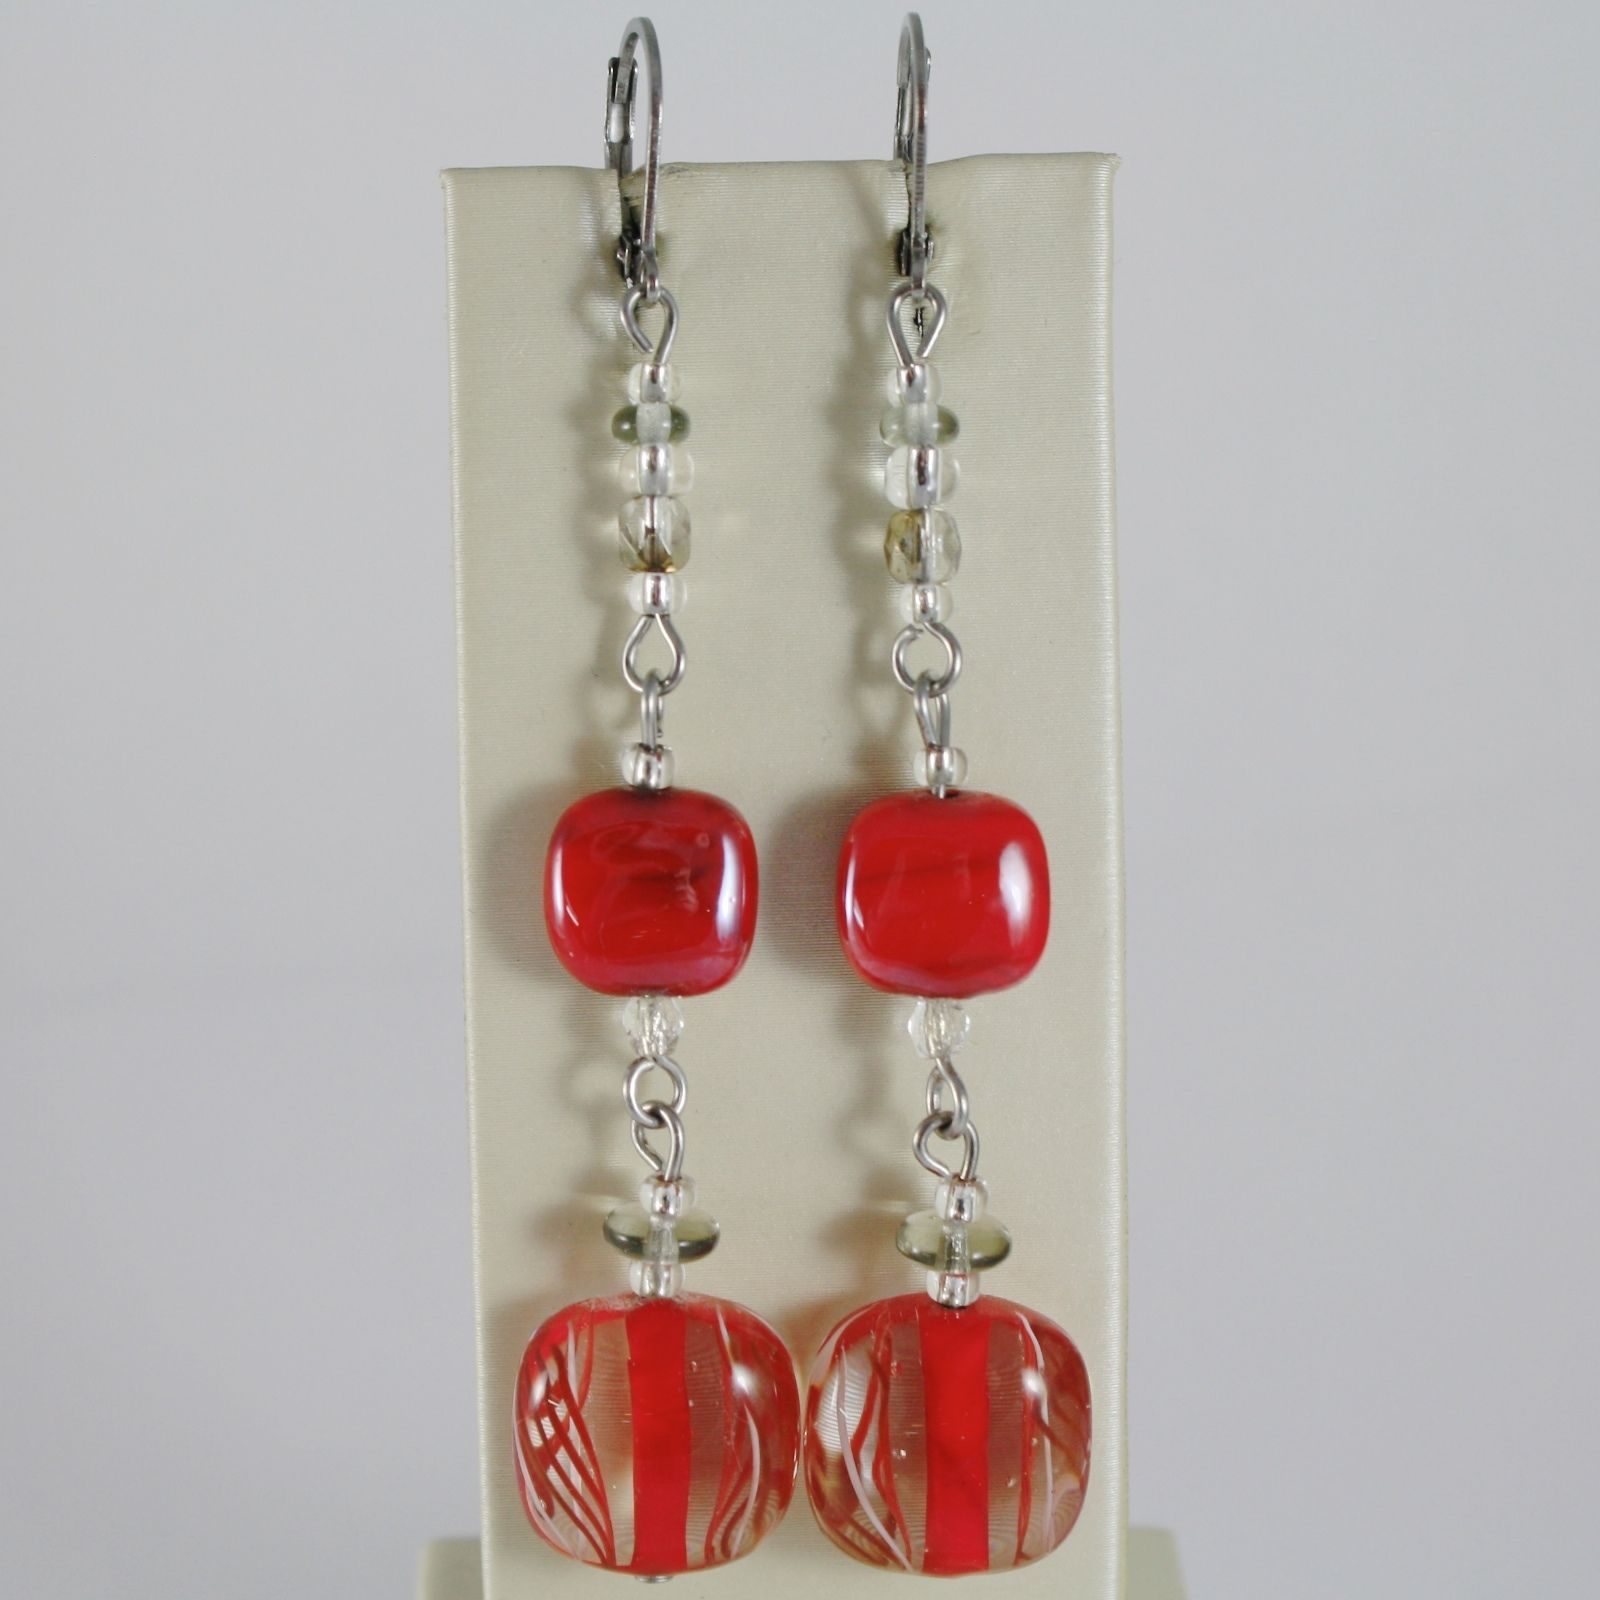 ANTICA MURRINA VENEZIA LONG PENDANT EARRINGS, RED DOUBLE STRIPED SQUARES